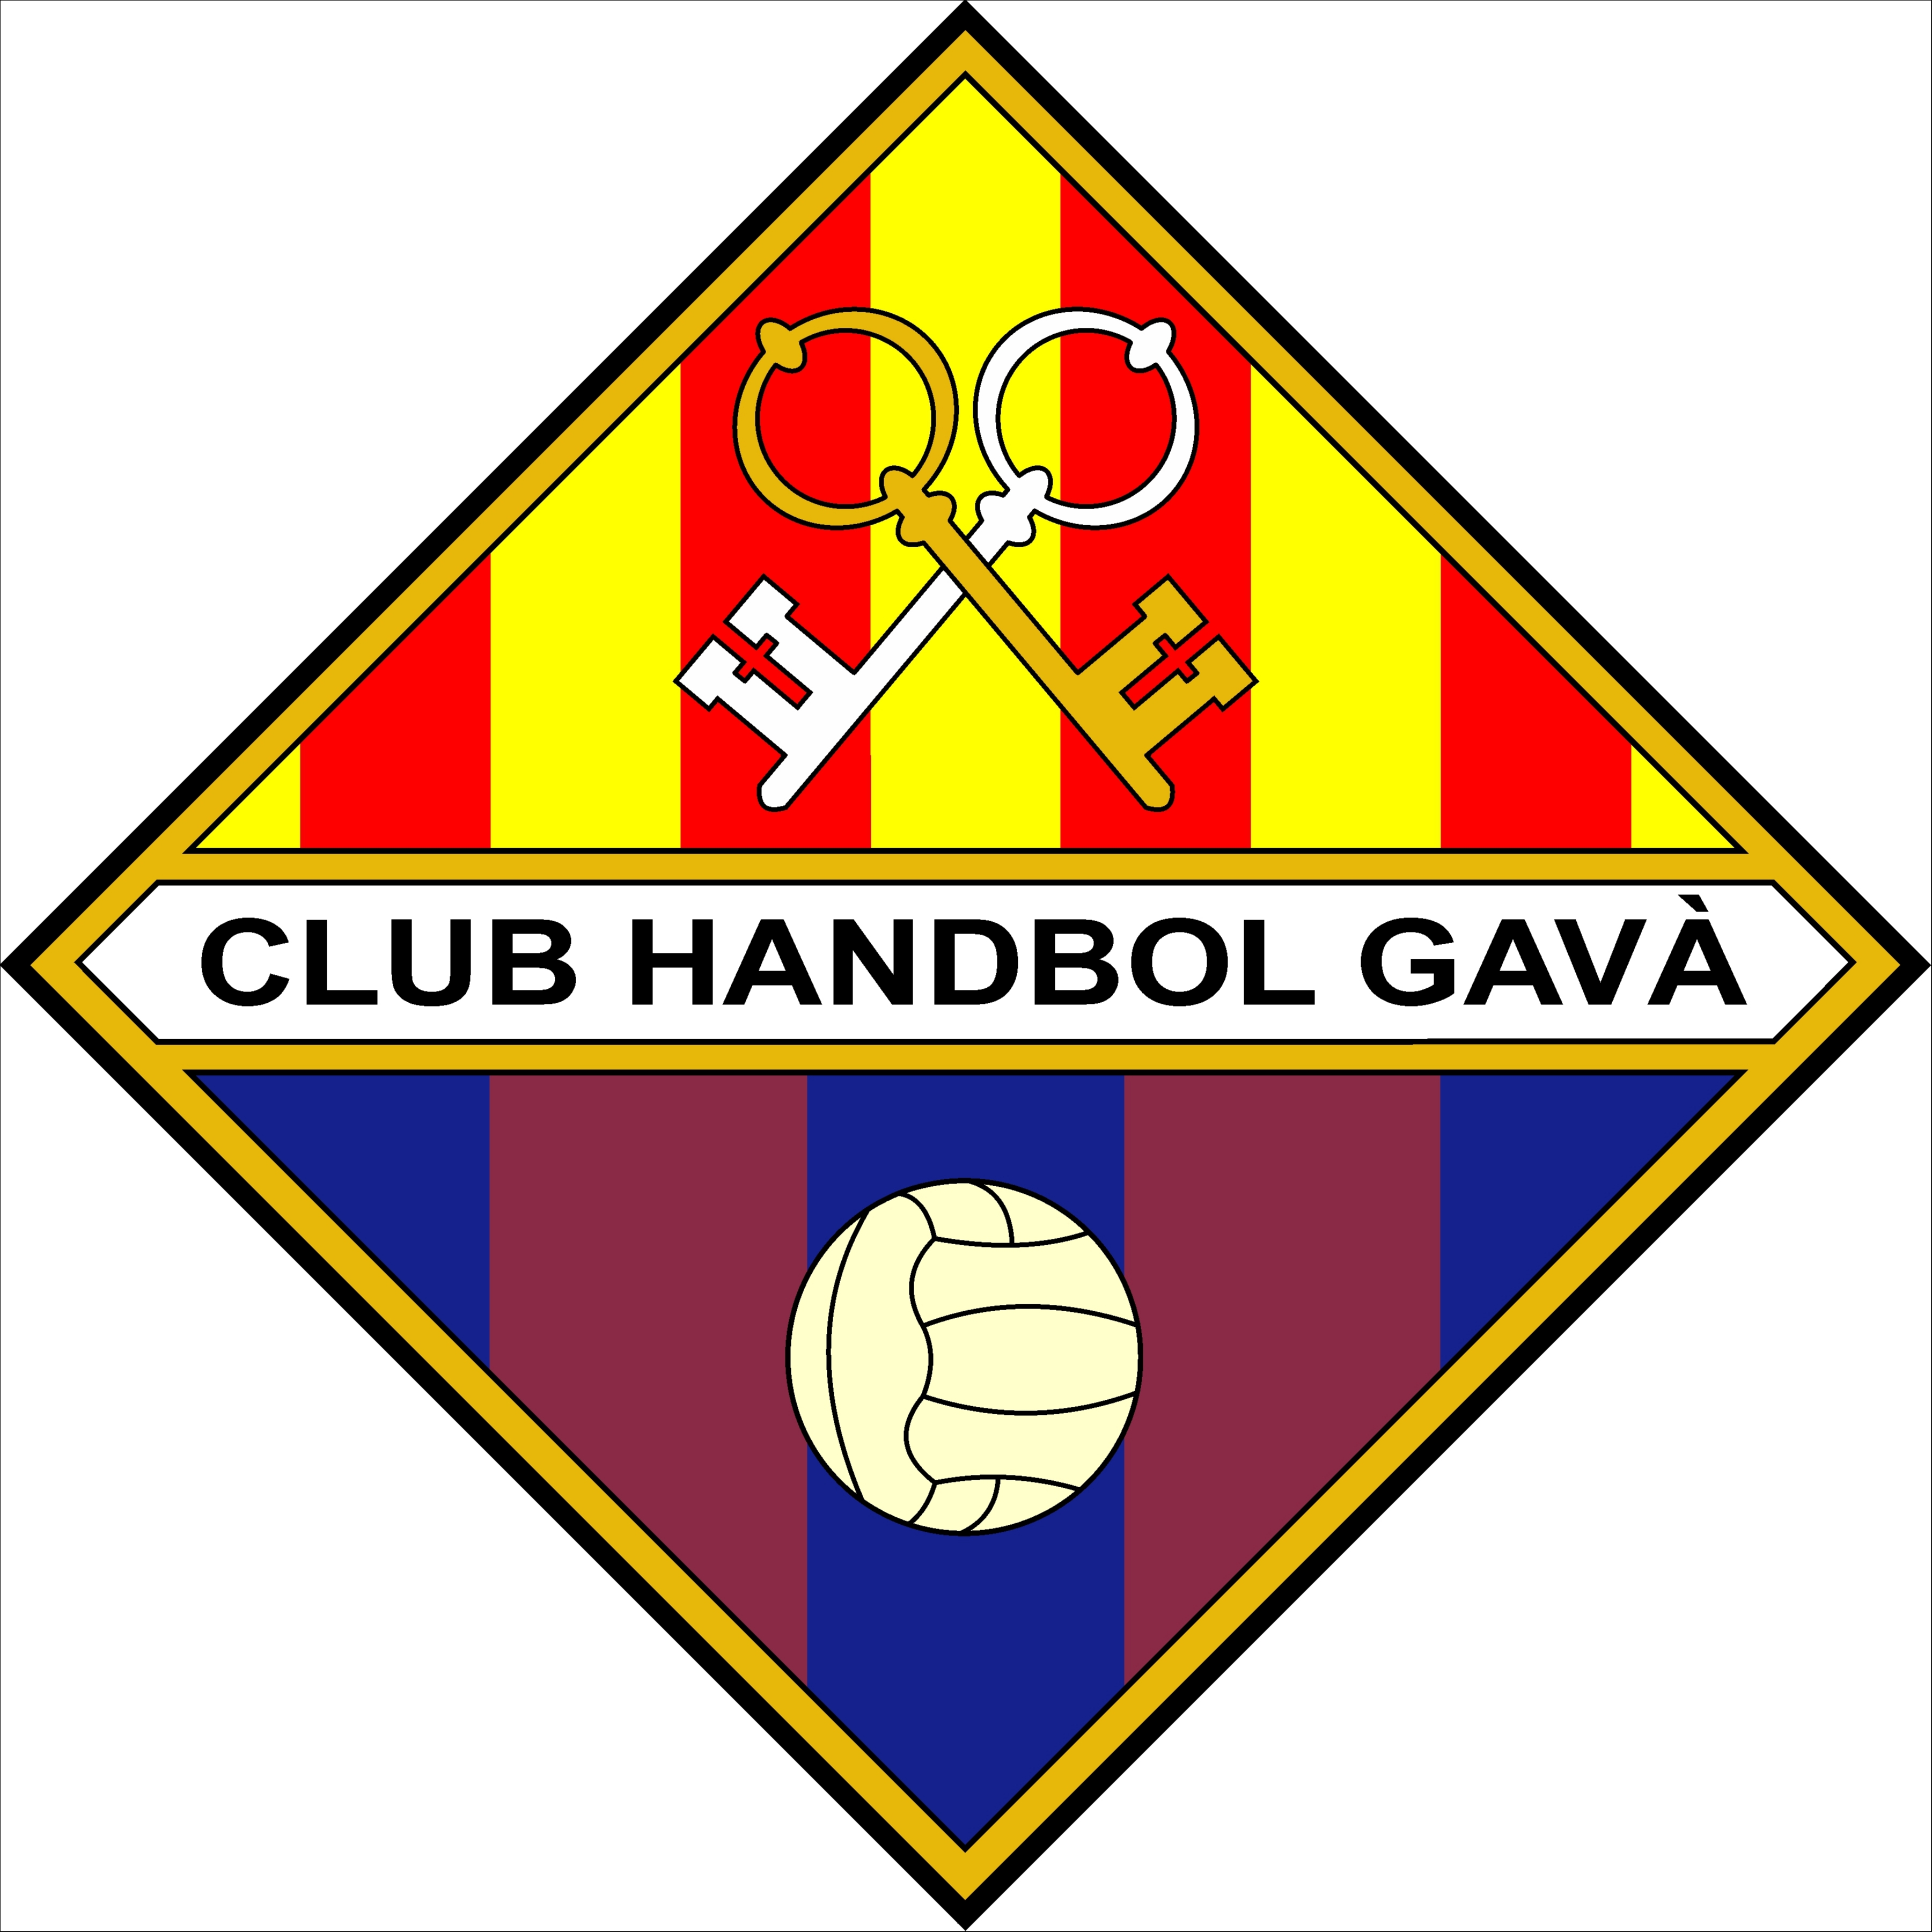 CLUB HANDBOL GAVA